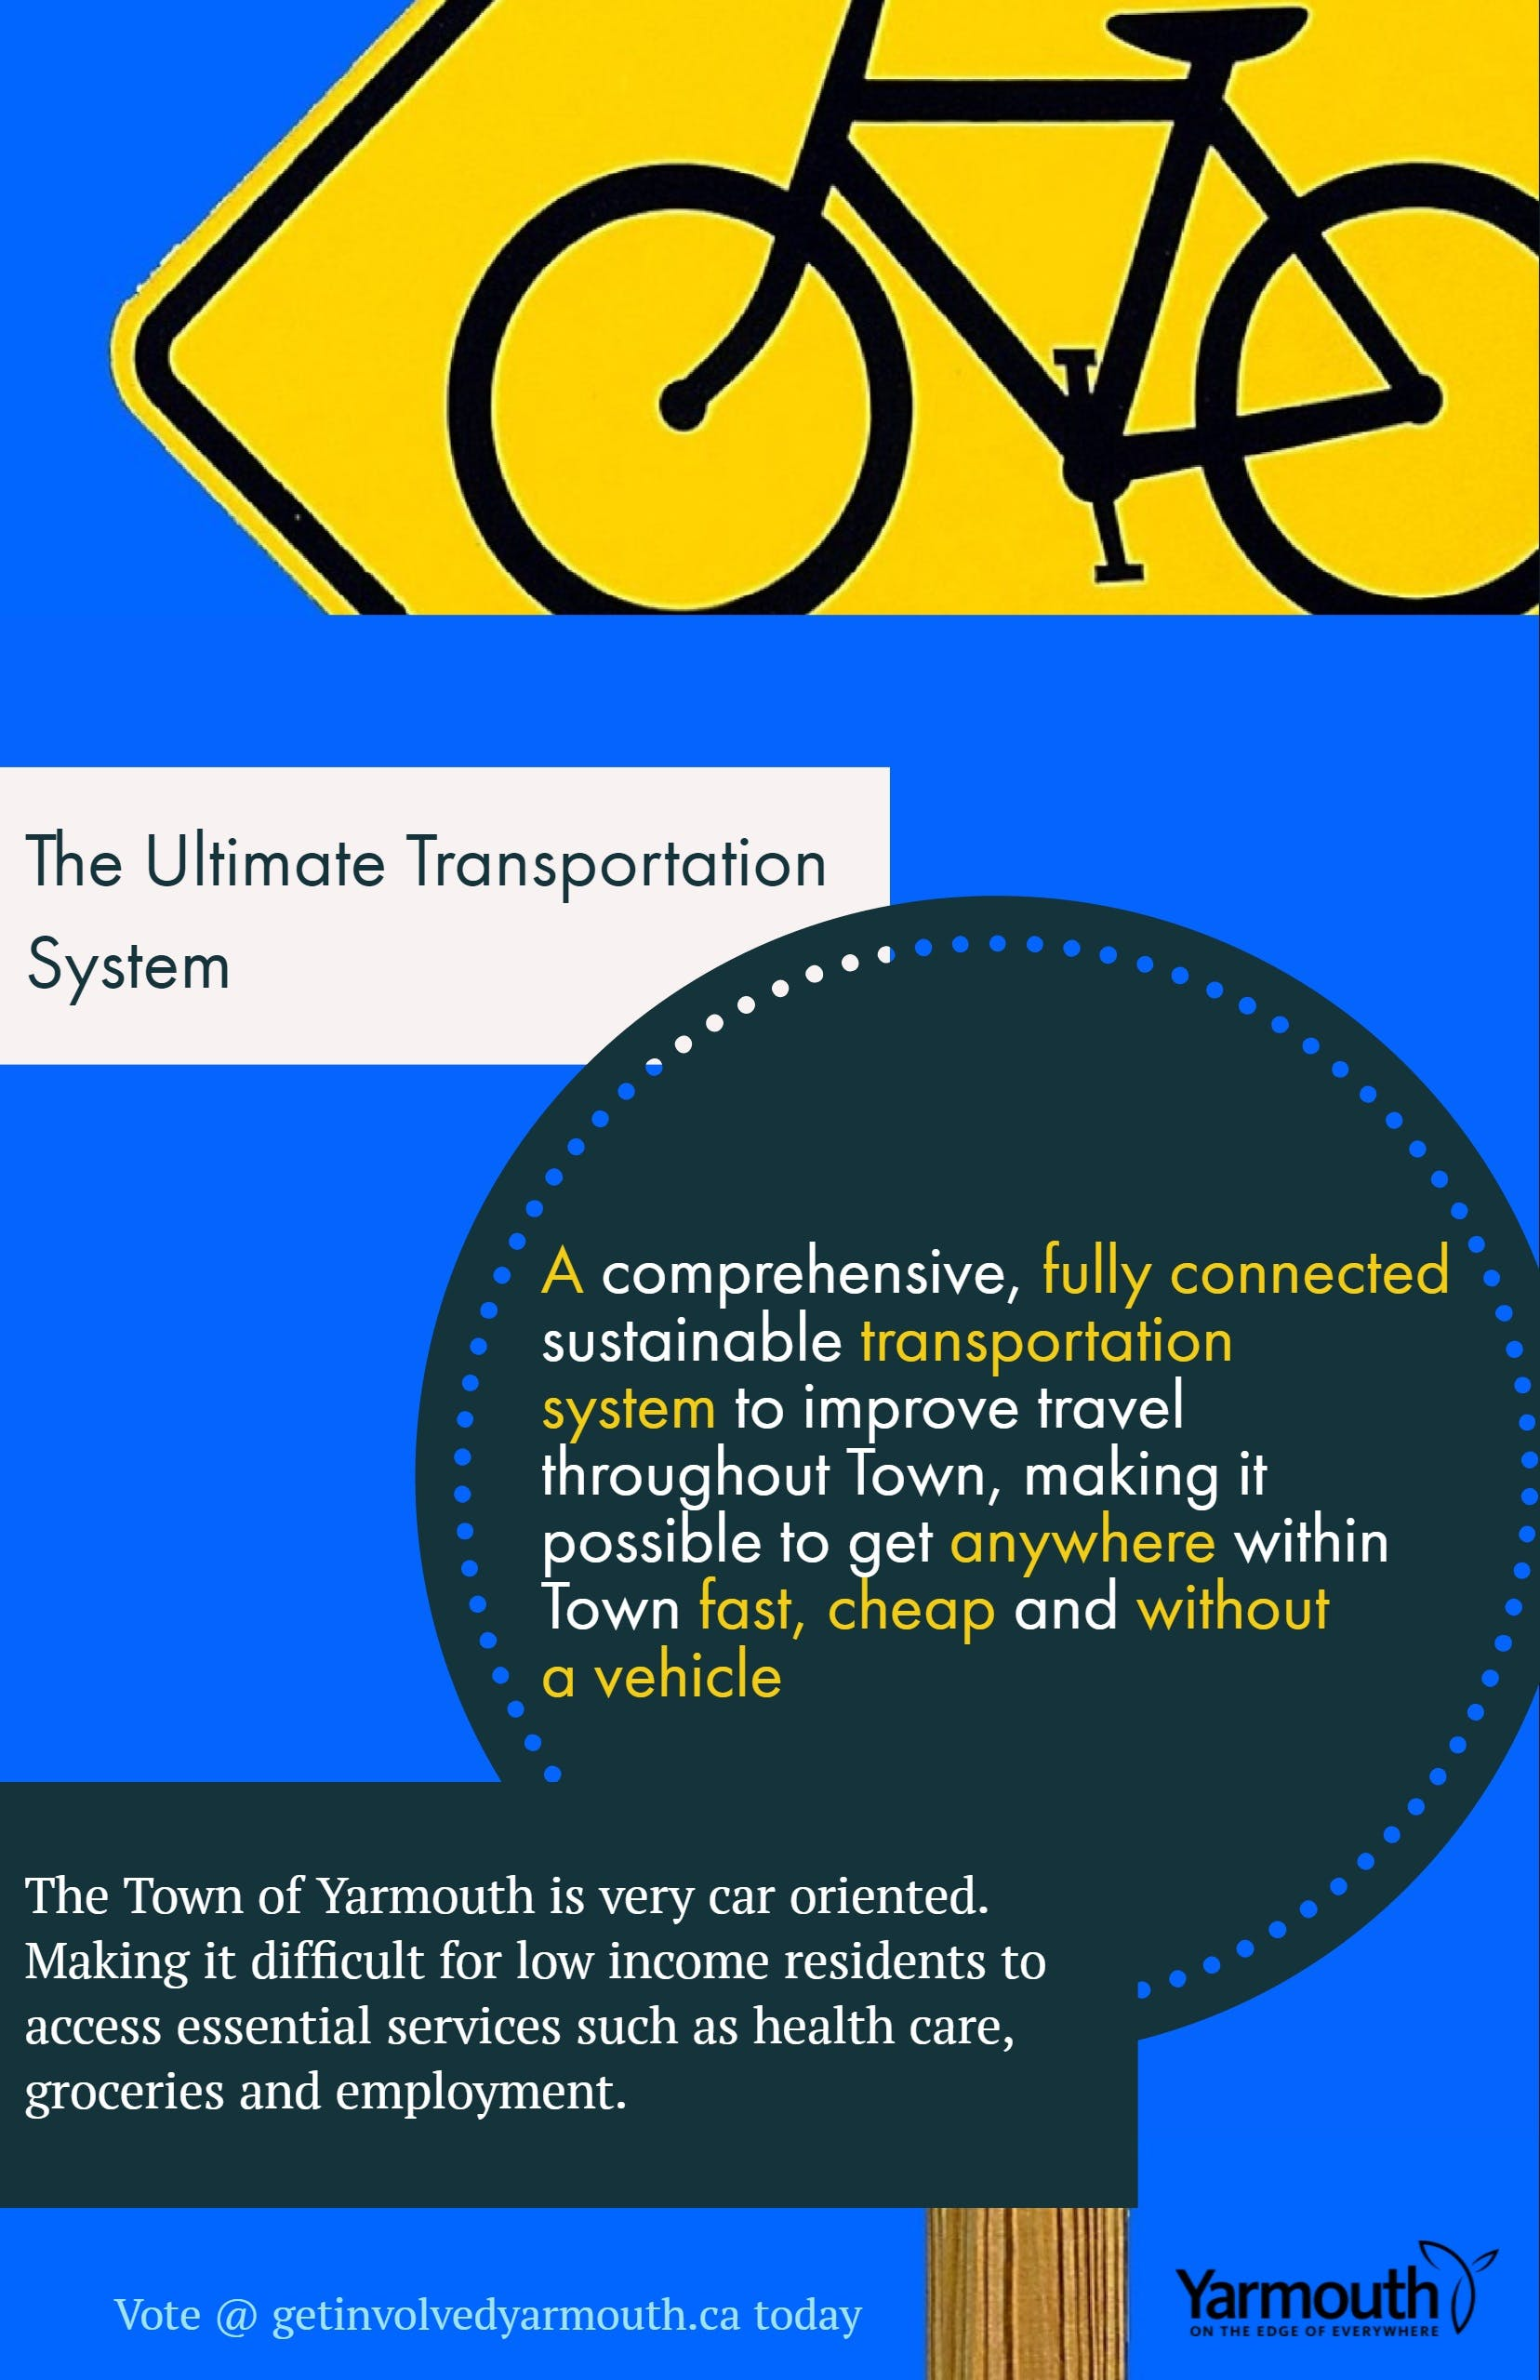 Smart City Poster -Transportation Idea